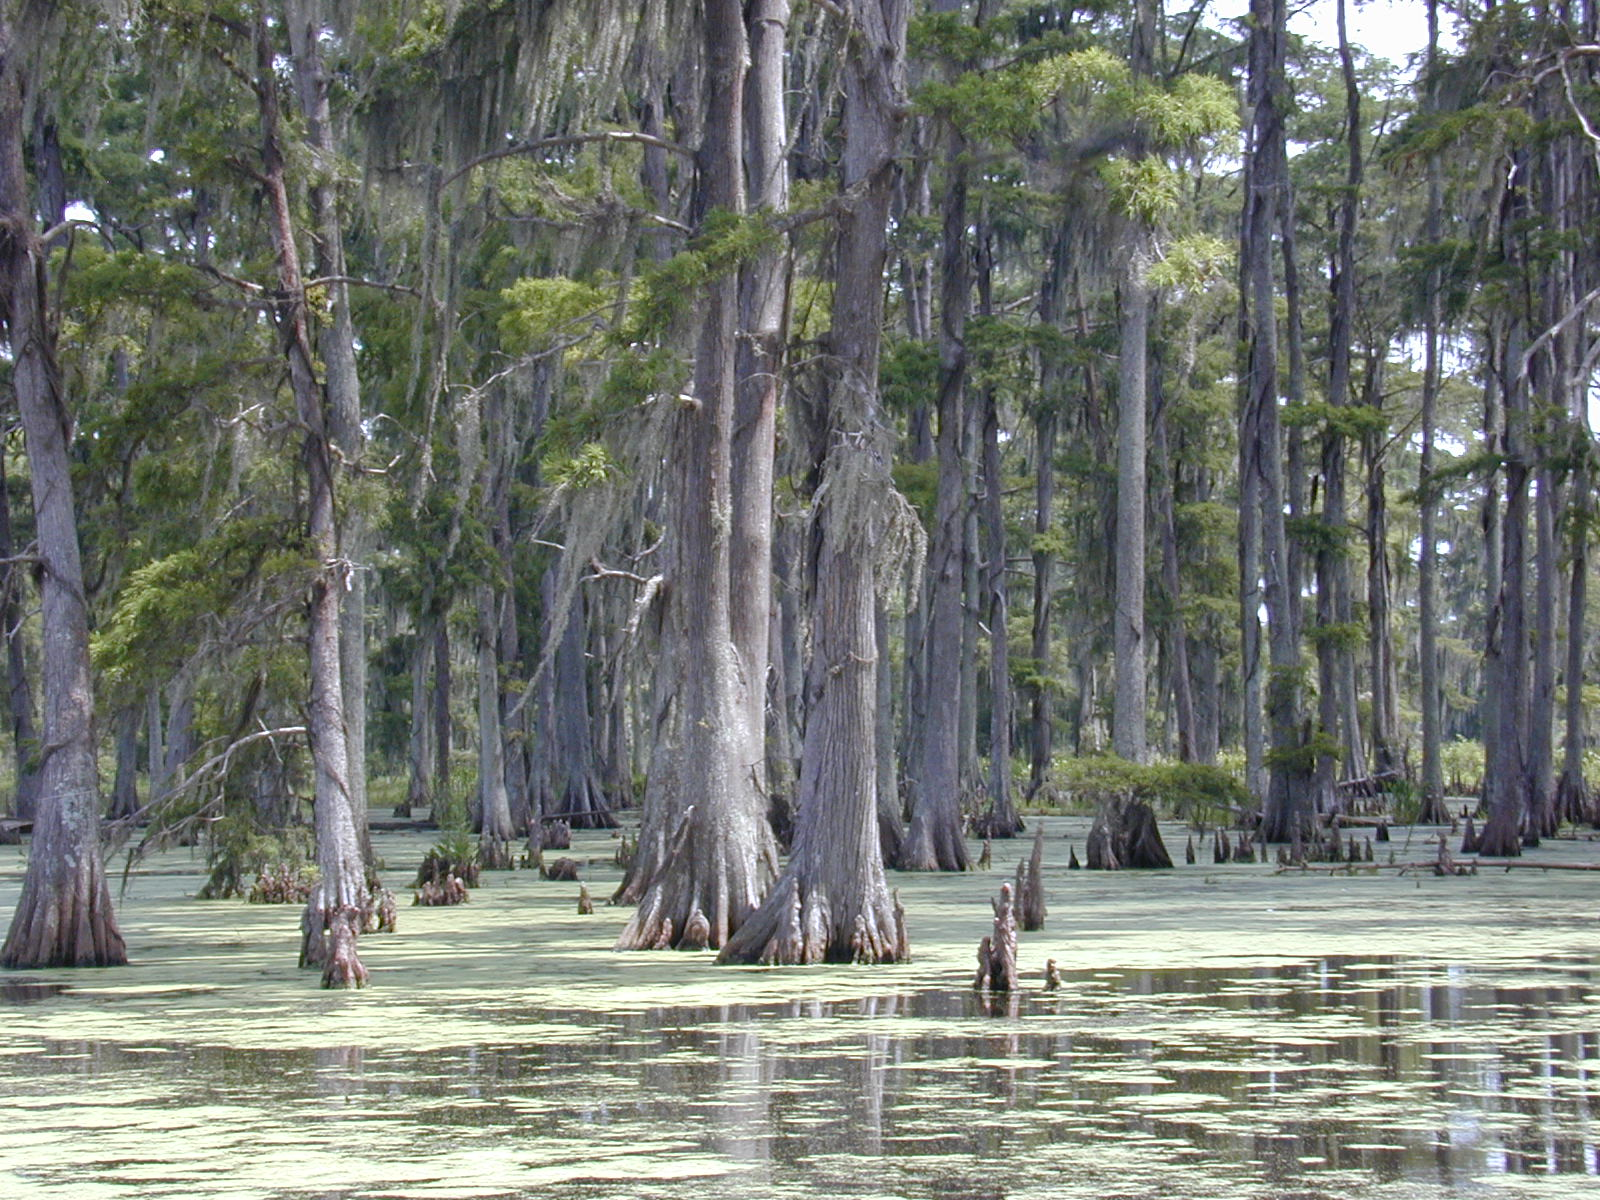 All About The Southern United States Easy Science For Kids Image Of Cypresses In The